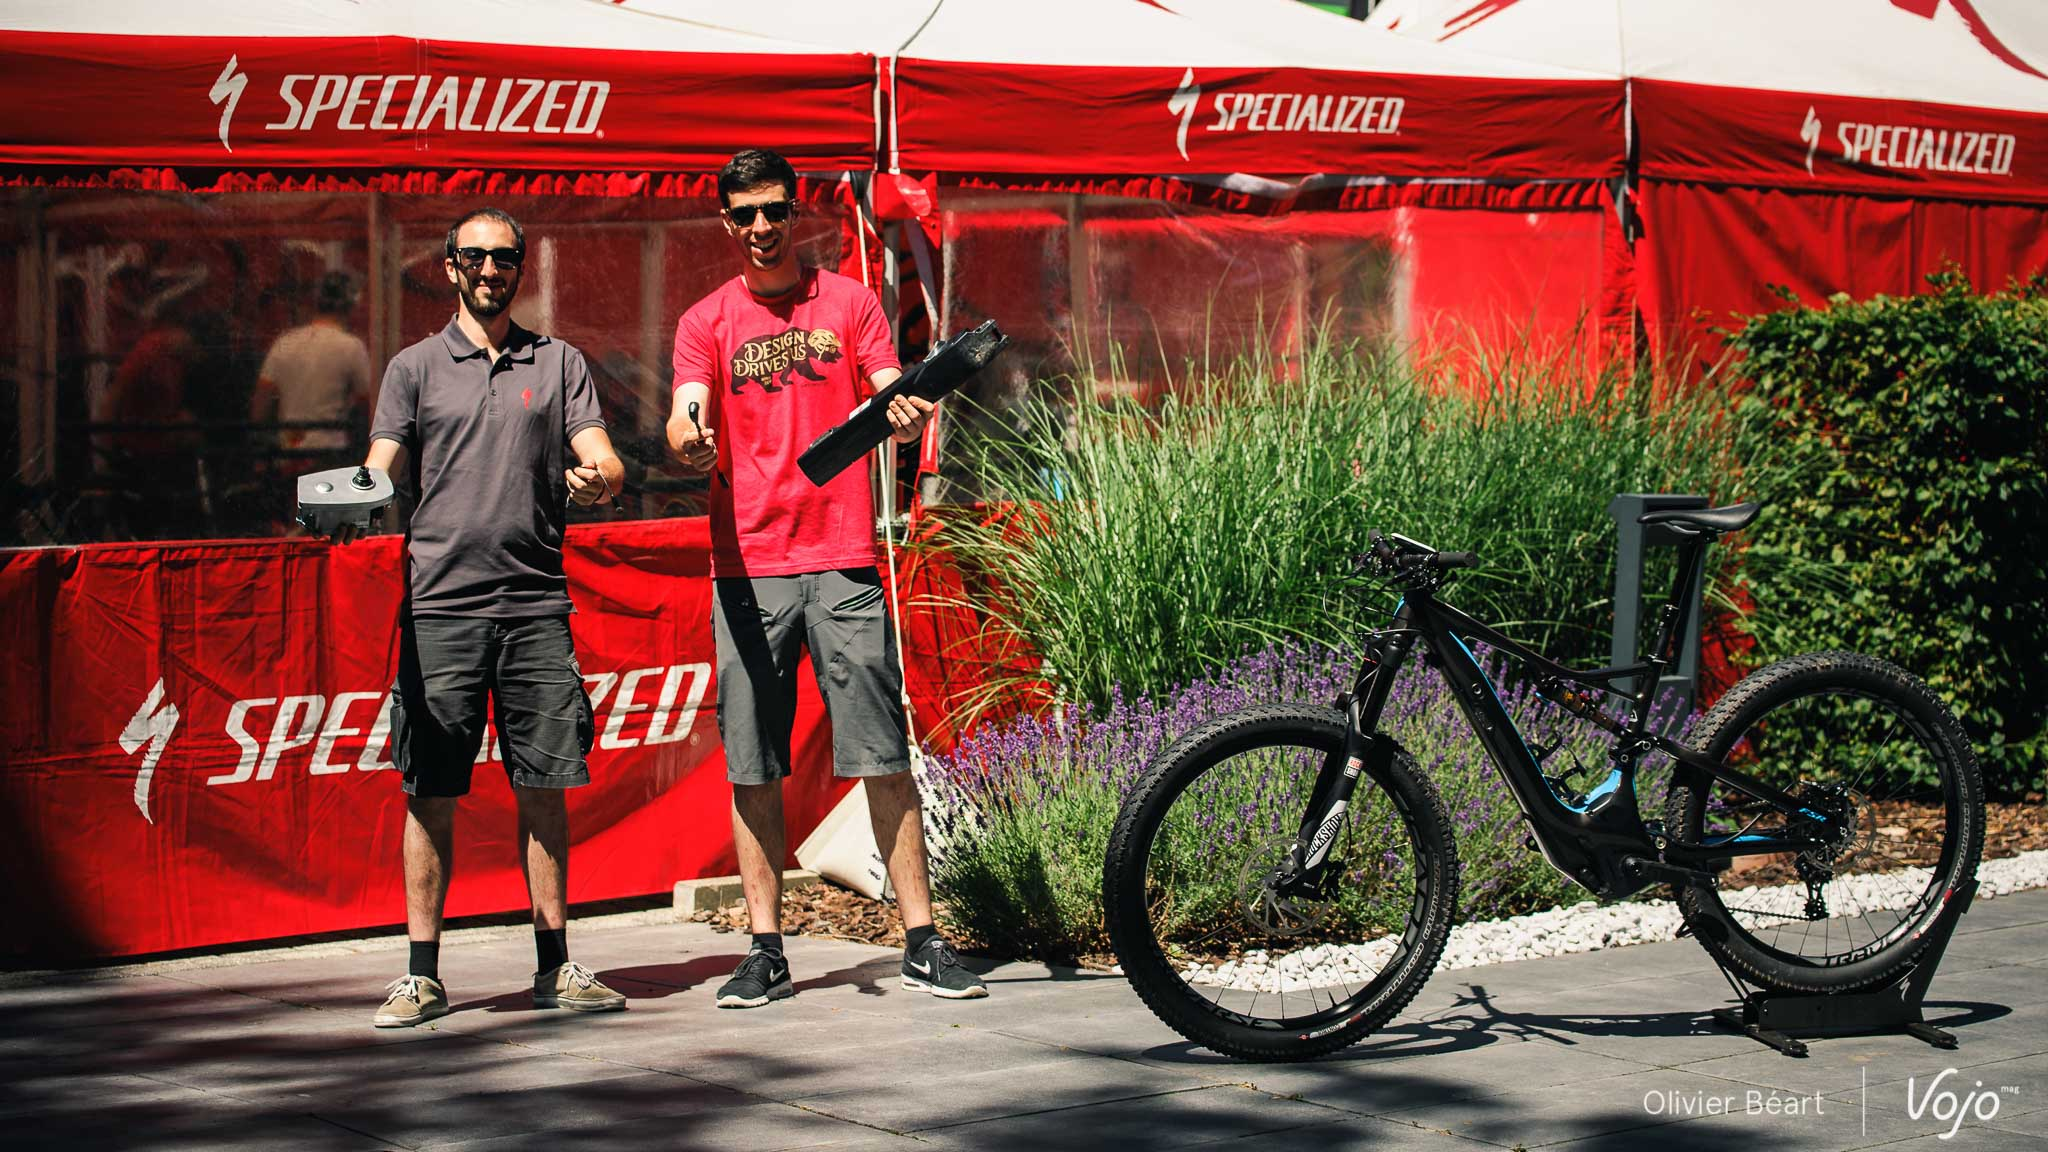 Specialized_Turbo_Levo_FSR_Copyright_Beart_VojoMag-1-2